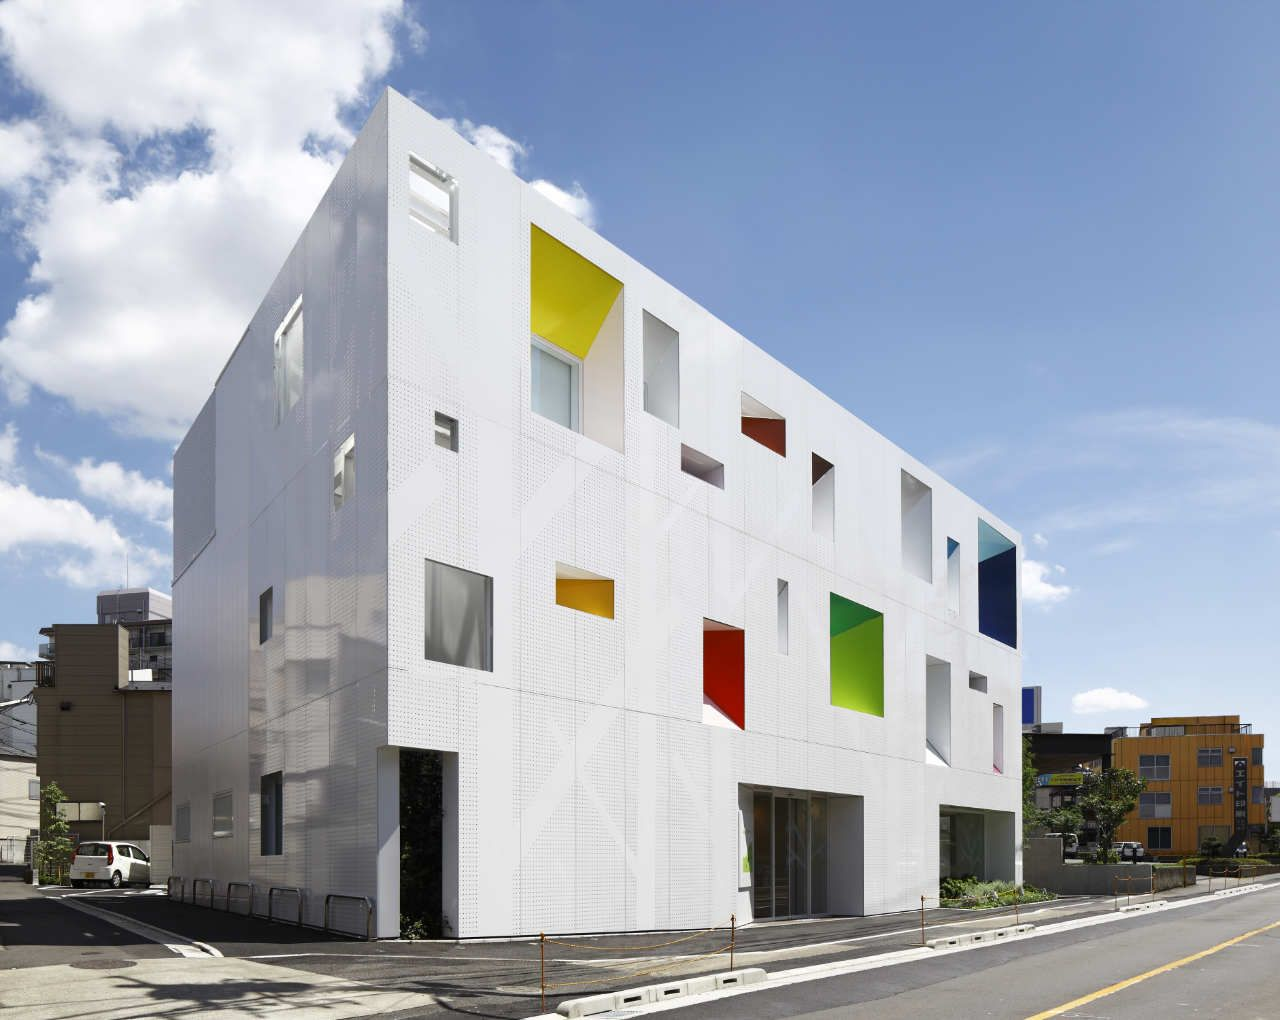 sugamo shinkin bank tokiwadai branch emmanuelle moureaux architecture design archi. Black Bedroom Furniture Sets. Home Design Ideas